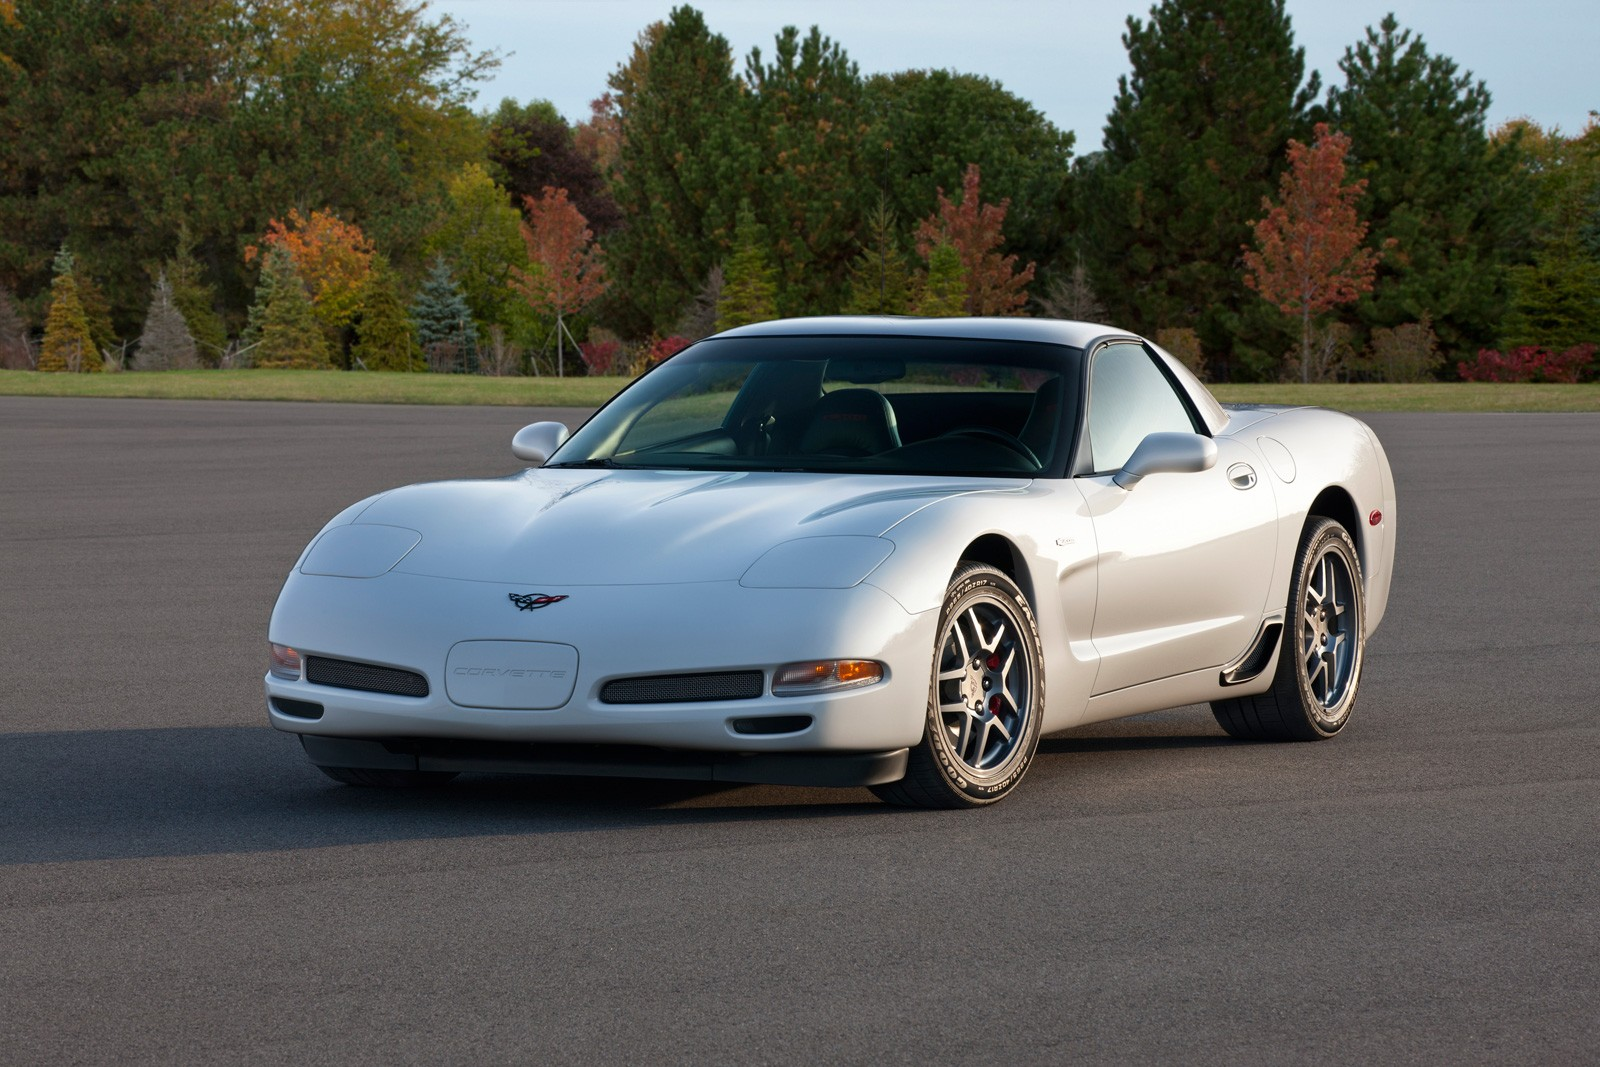 Top 10 Best Used Sports Cars Under $10K » AutoGuide.com News